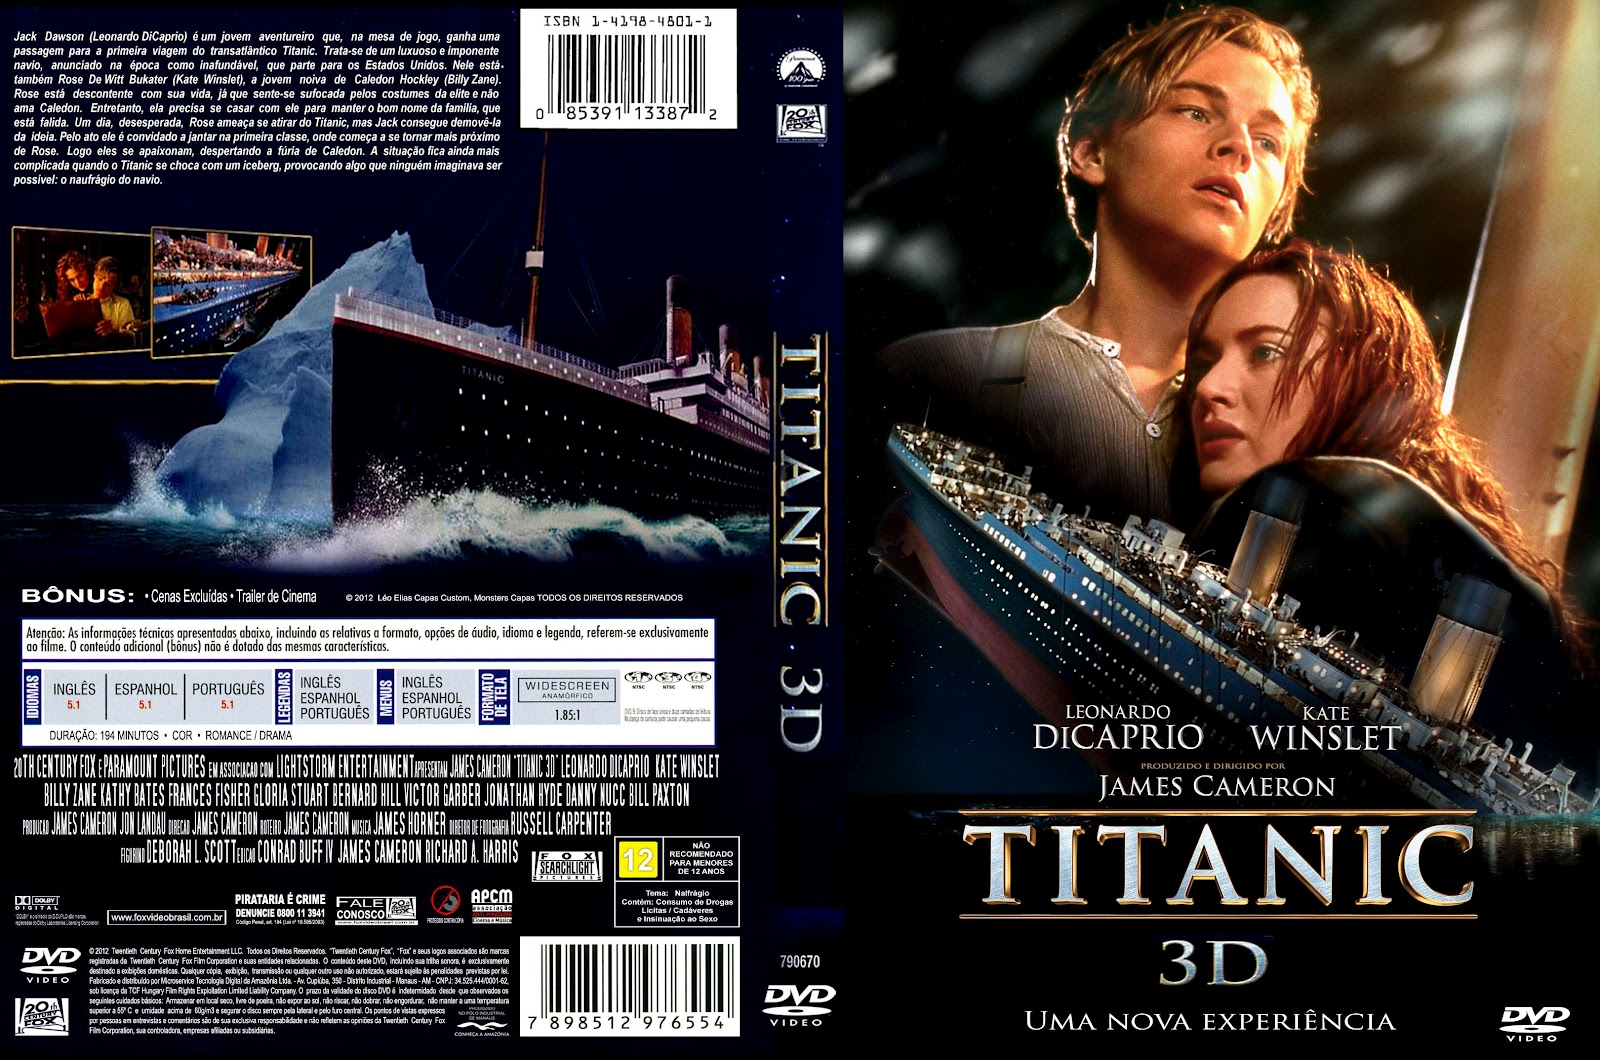 Download Titanic 3D Half-SBS Bluray 1080p Dual Áudio Titanic 3D capa 2